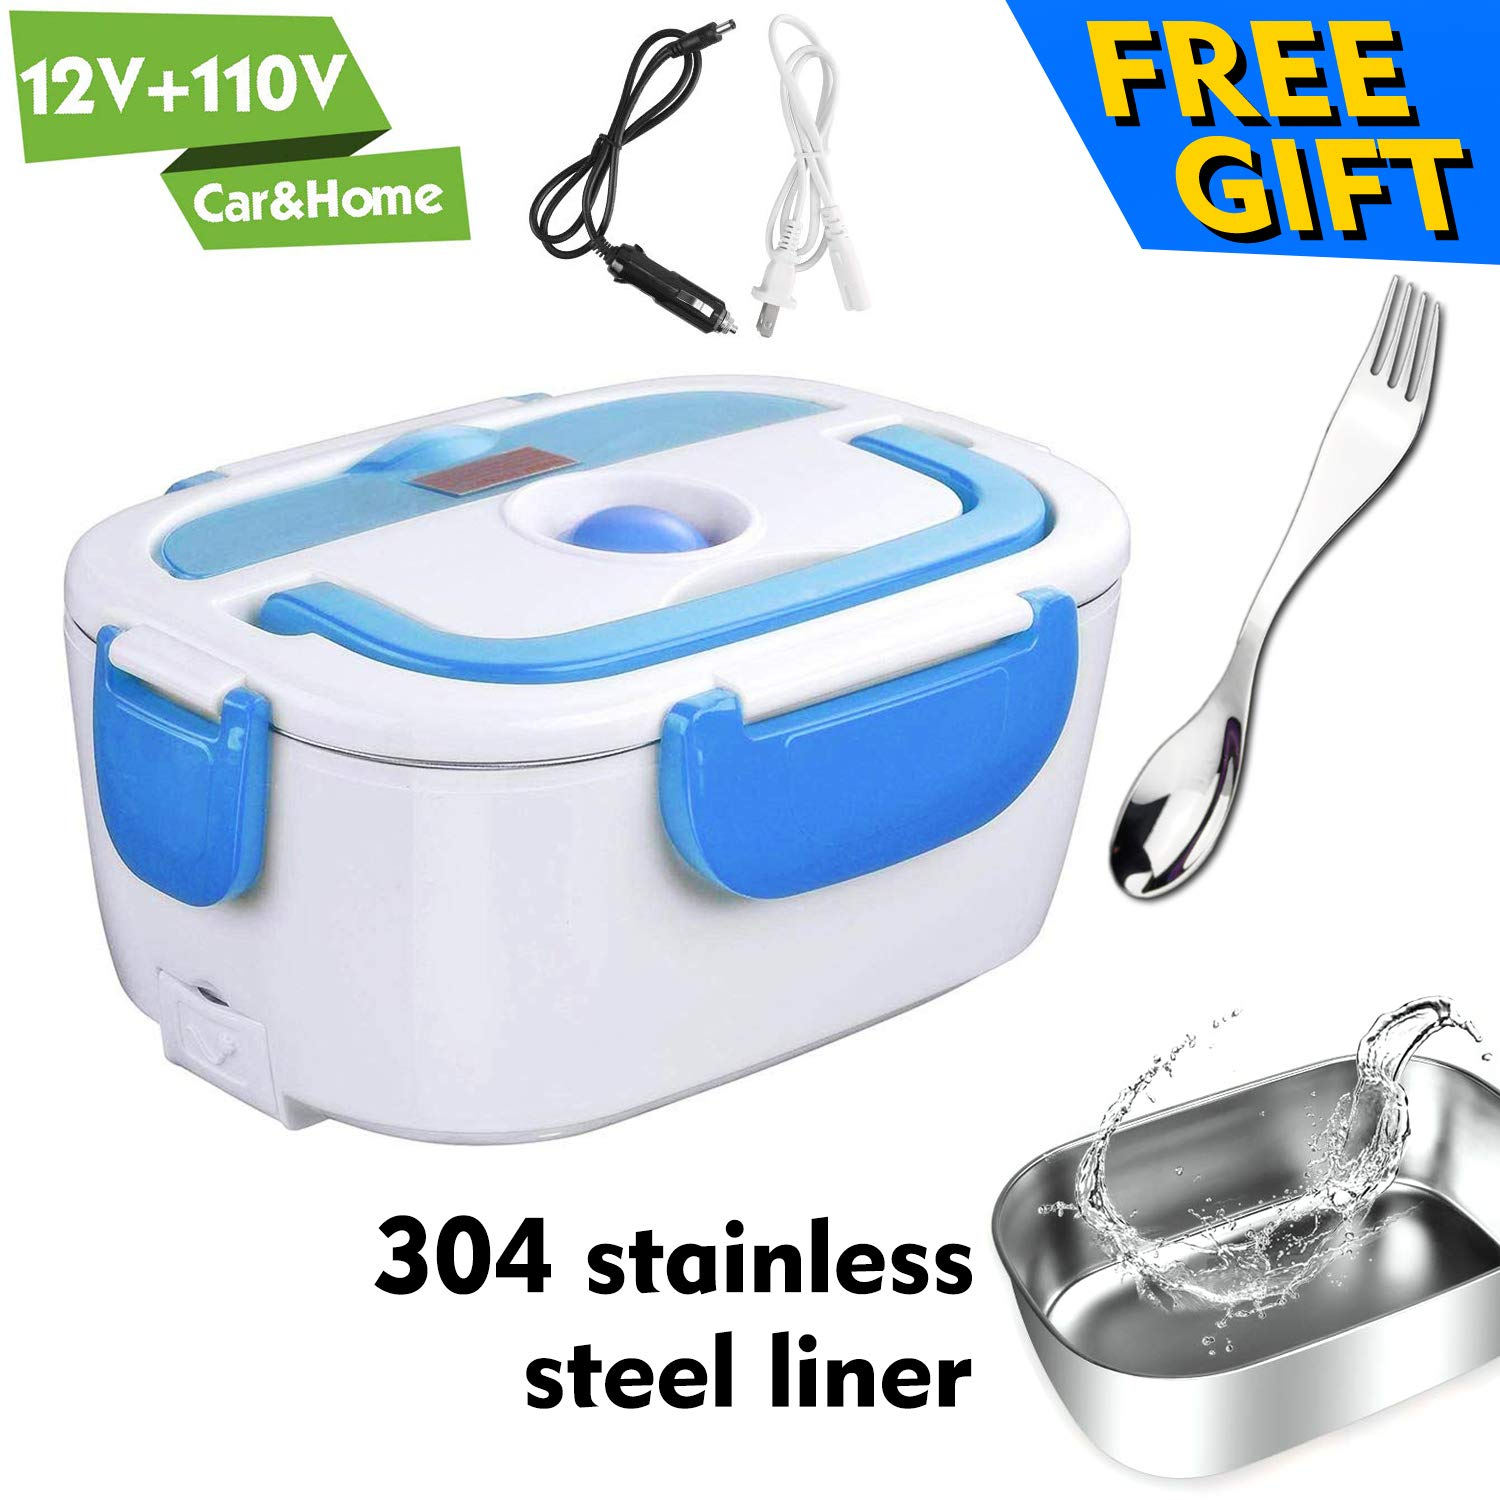 Electric Lunch Box for Car and Home 110V & 12V 40W - Removable Stainless Steel Portable Food Grade Material Warmer Heater - with 2 in 1 Fork & Spoon by HEIGE